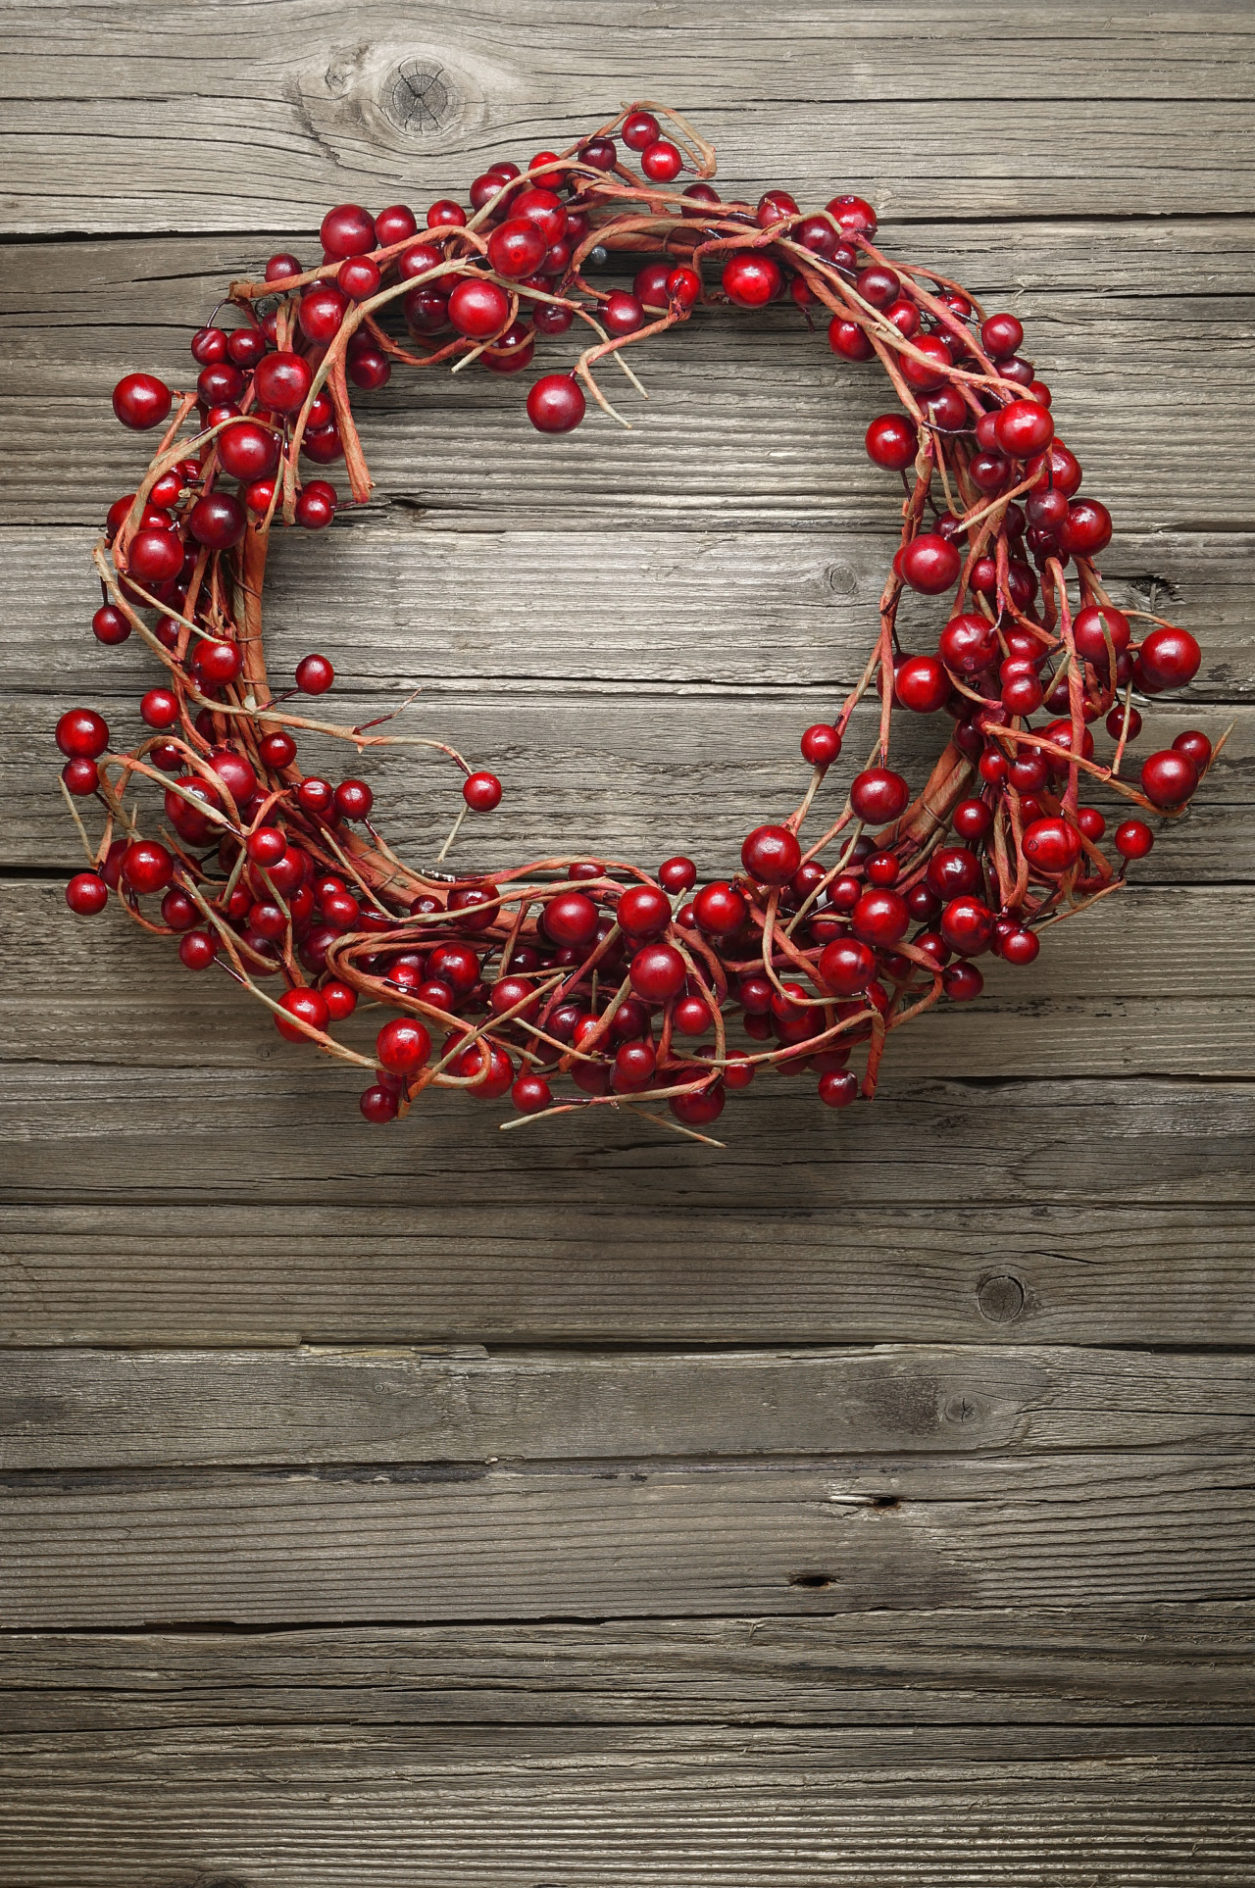 Winterberry Wreath on a Wooden Rustic Background